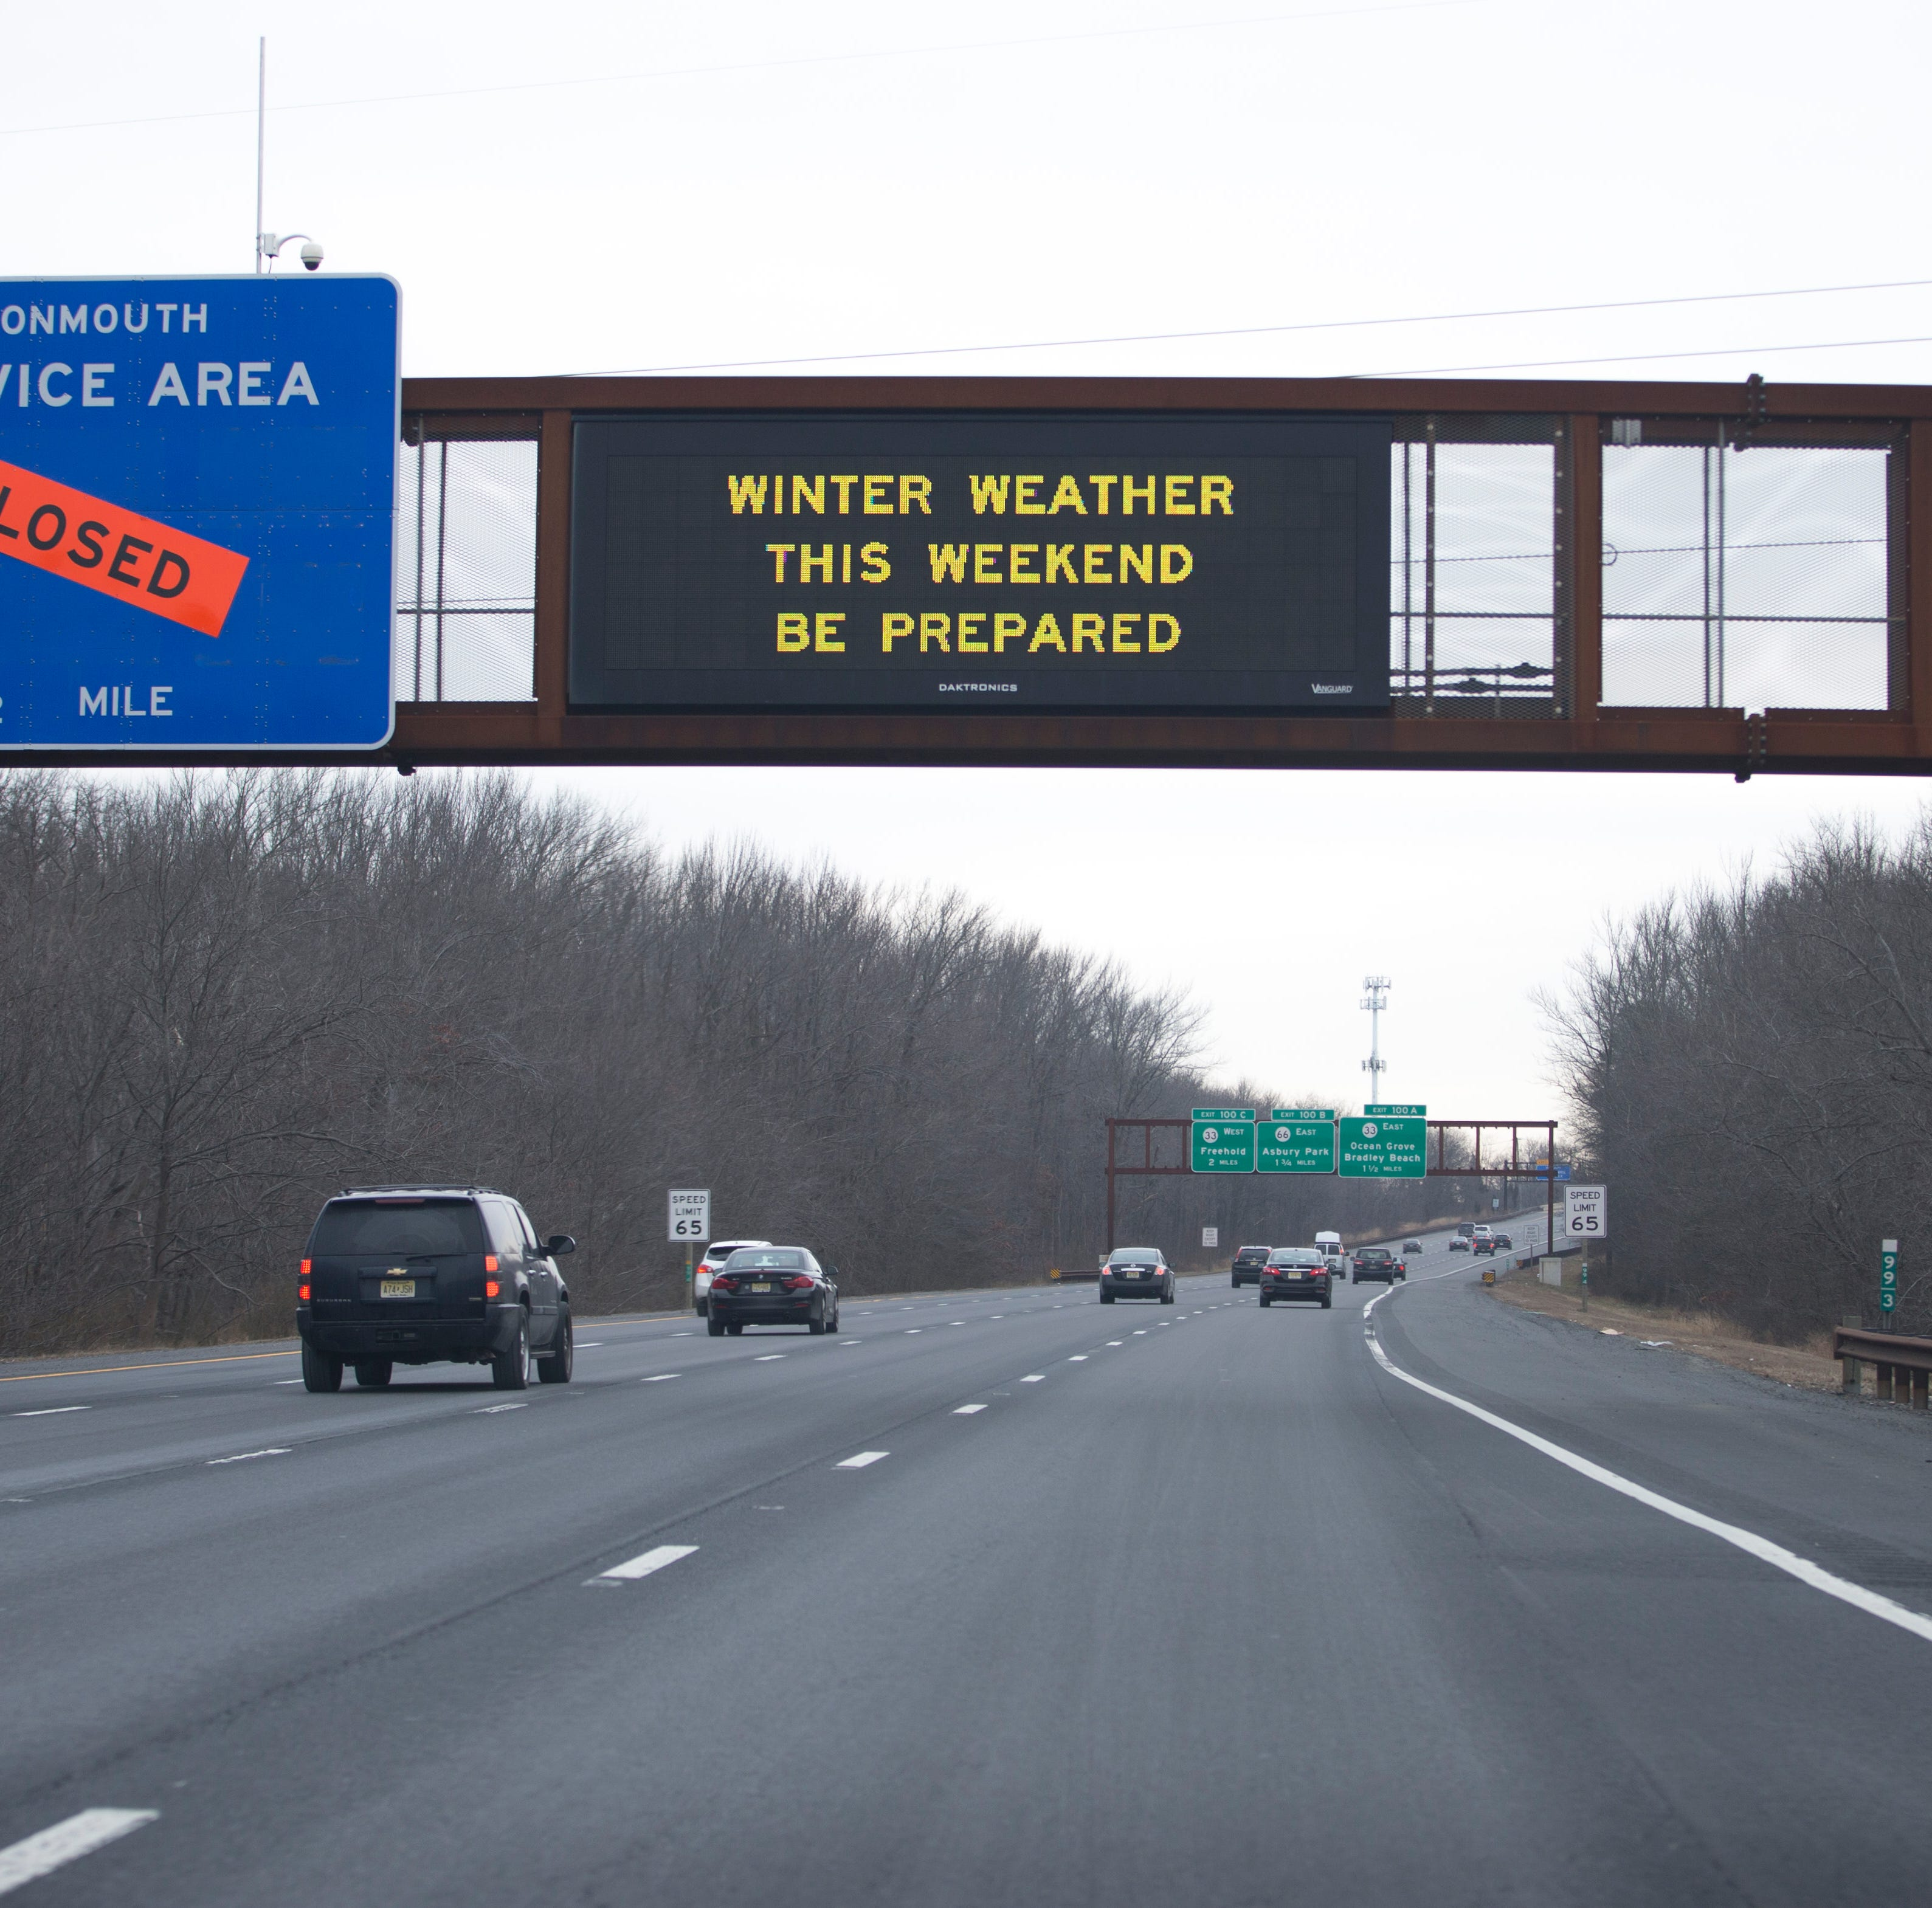 NJ weather: Mostly rain at the Shore, wintry mix in North Jersey